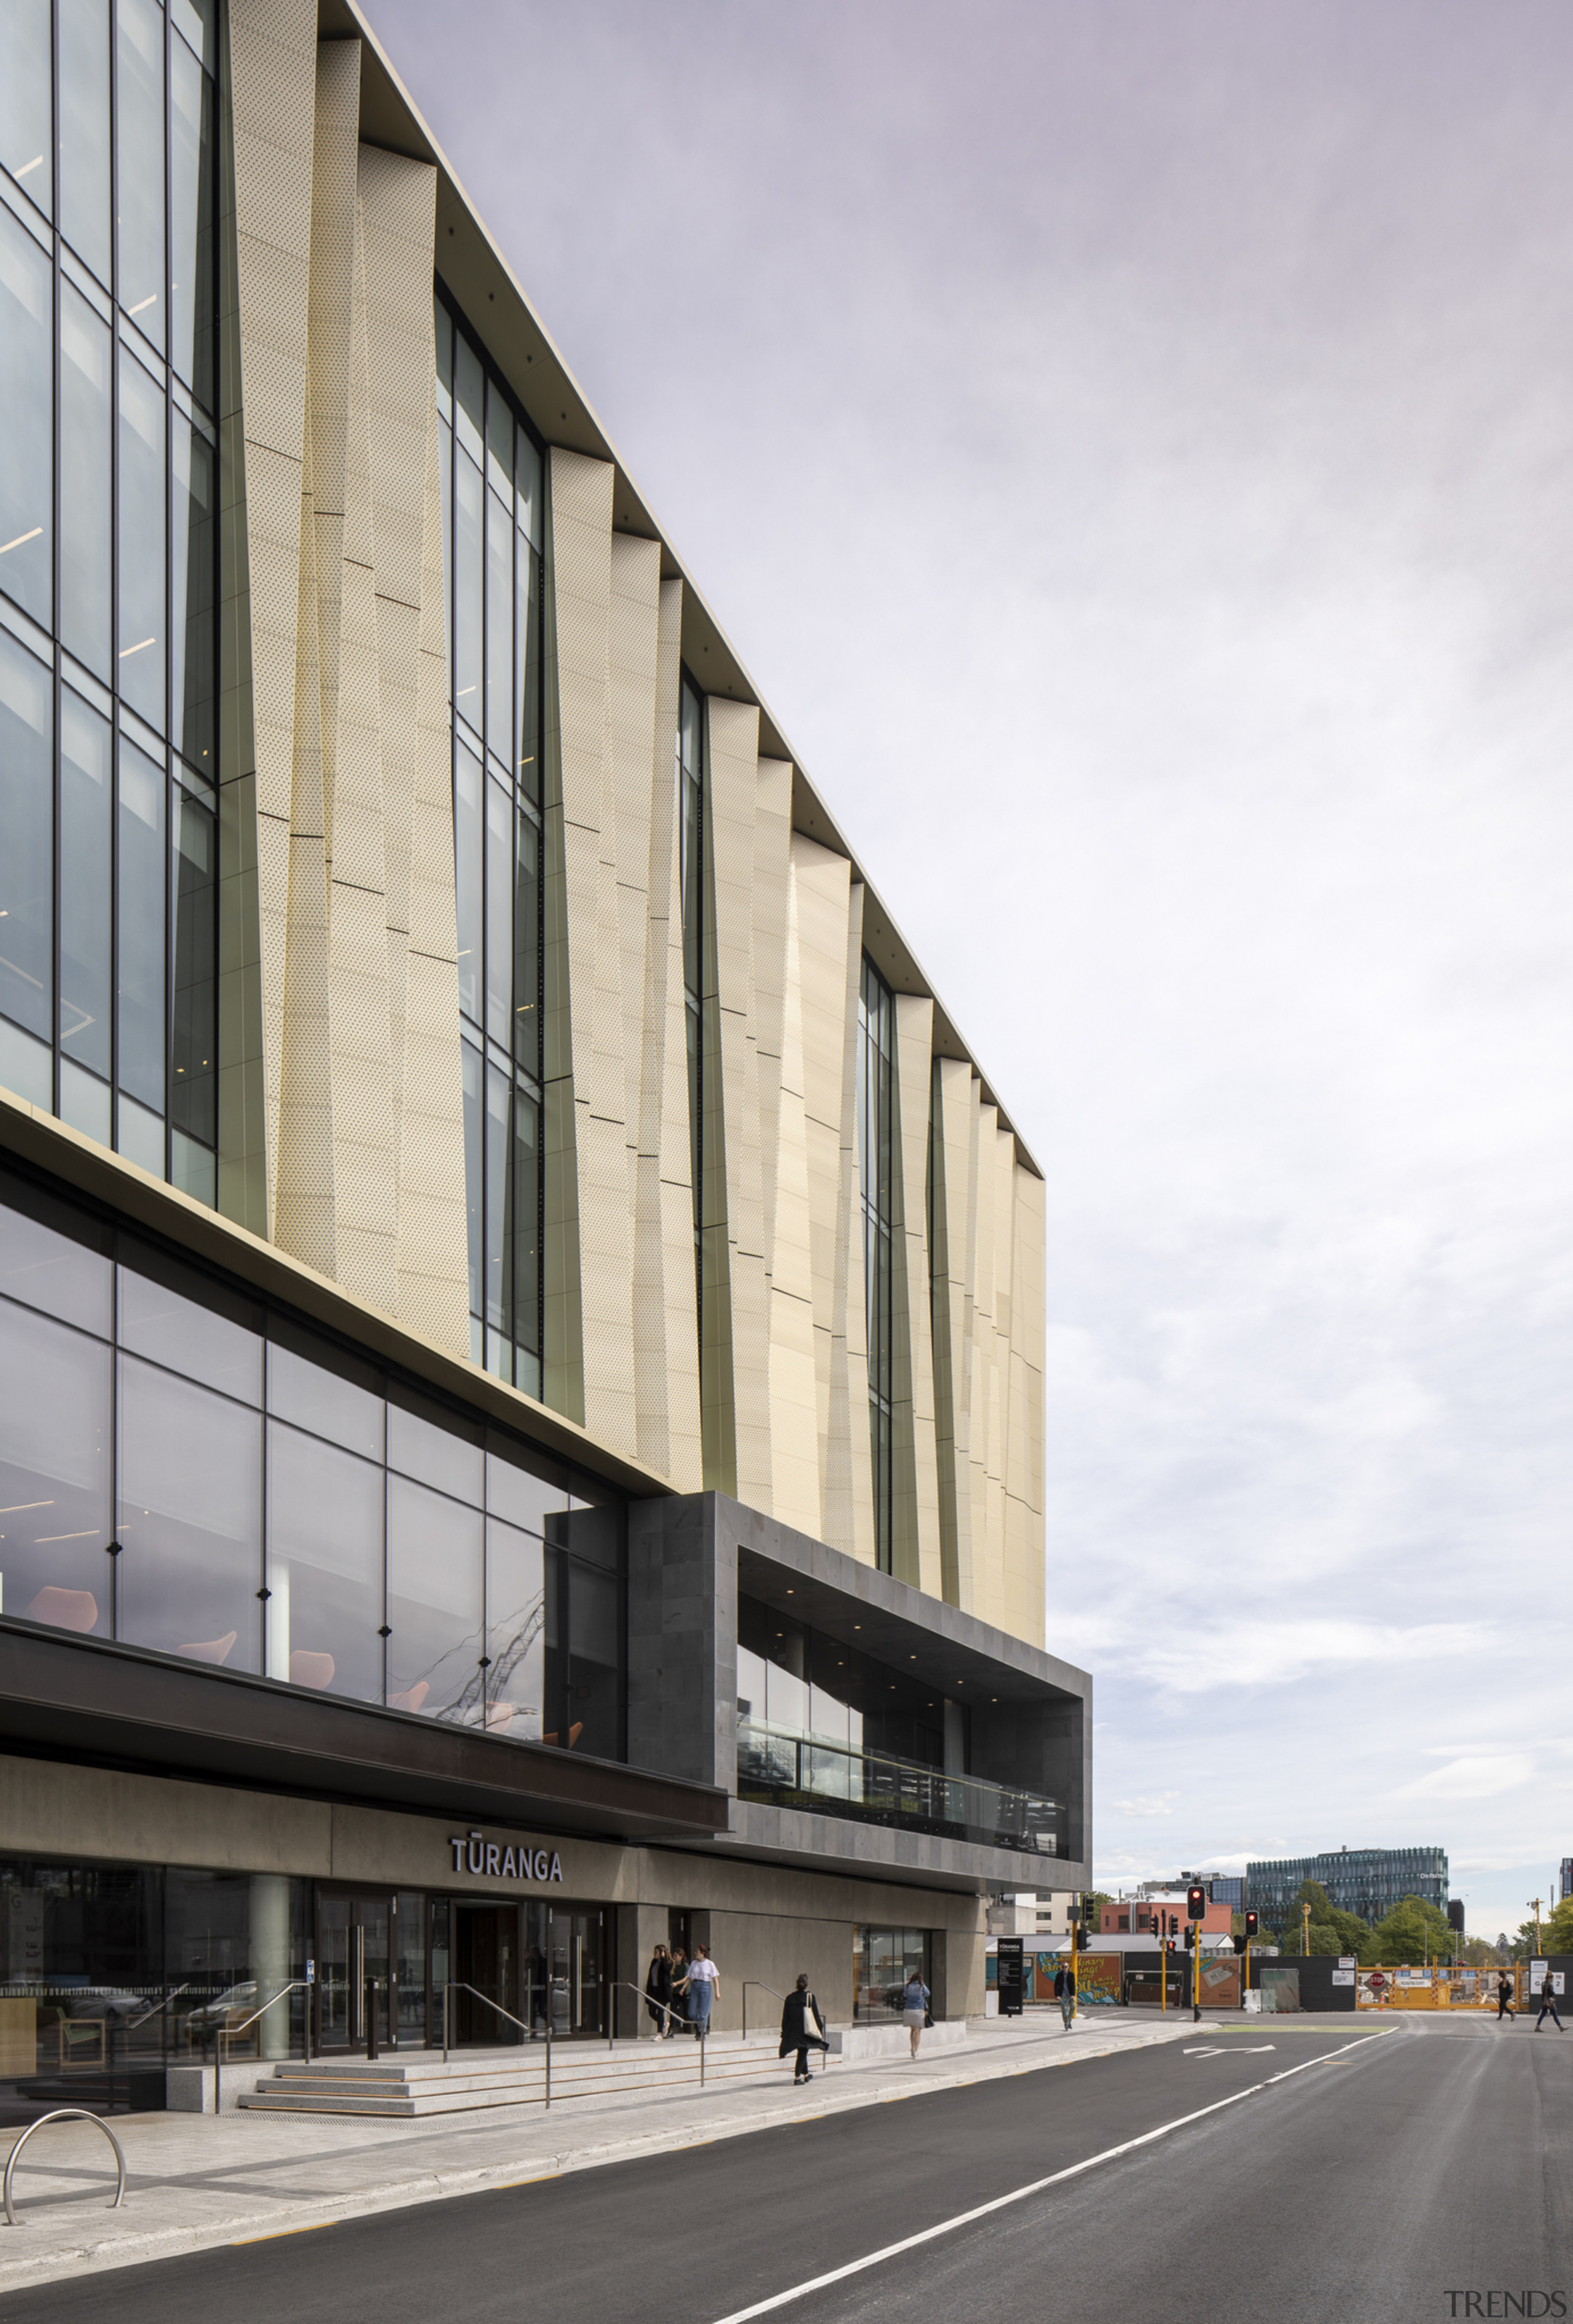 Christchurch Central Library – a celebration of culture apartment, architecture, brutalist architecture, building, commercial building, condominium, corporate headquarters, facade, headquarters, metropolitan area, mixed use, neighbourhood, residential area, sky, structure, white, gray